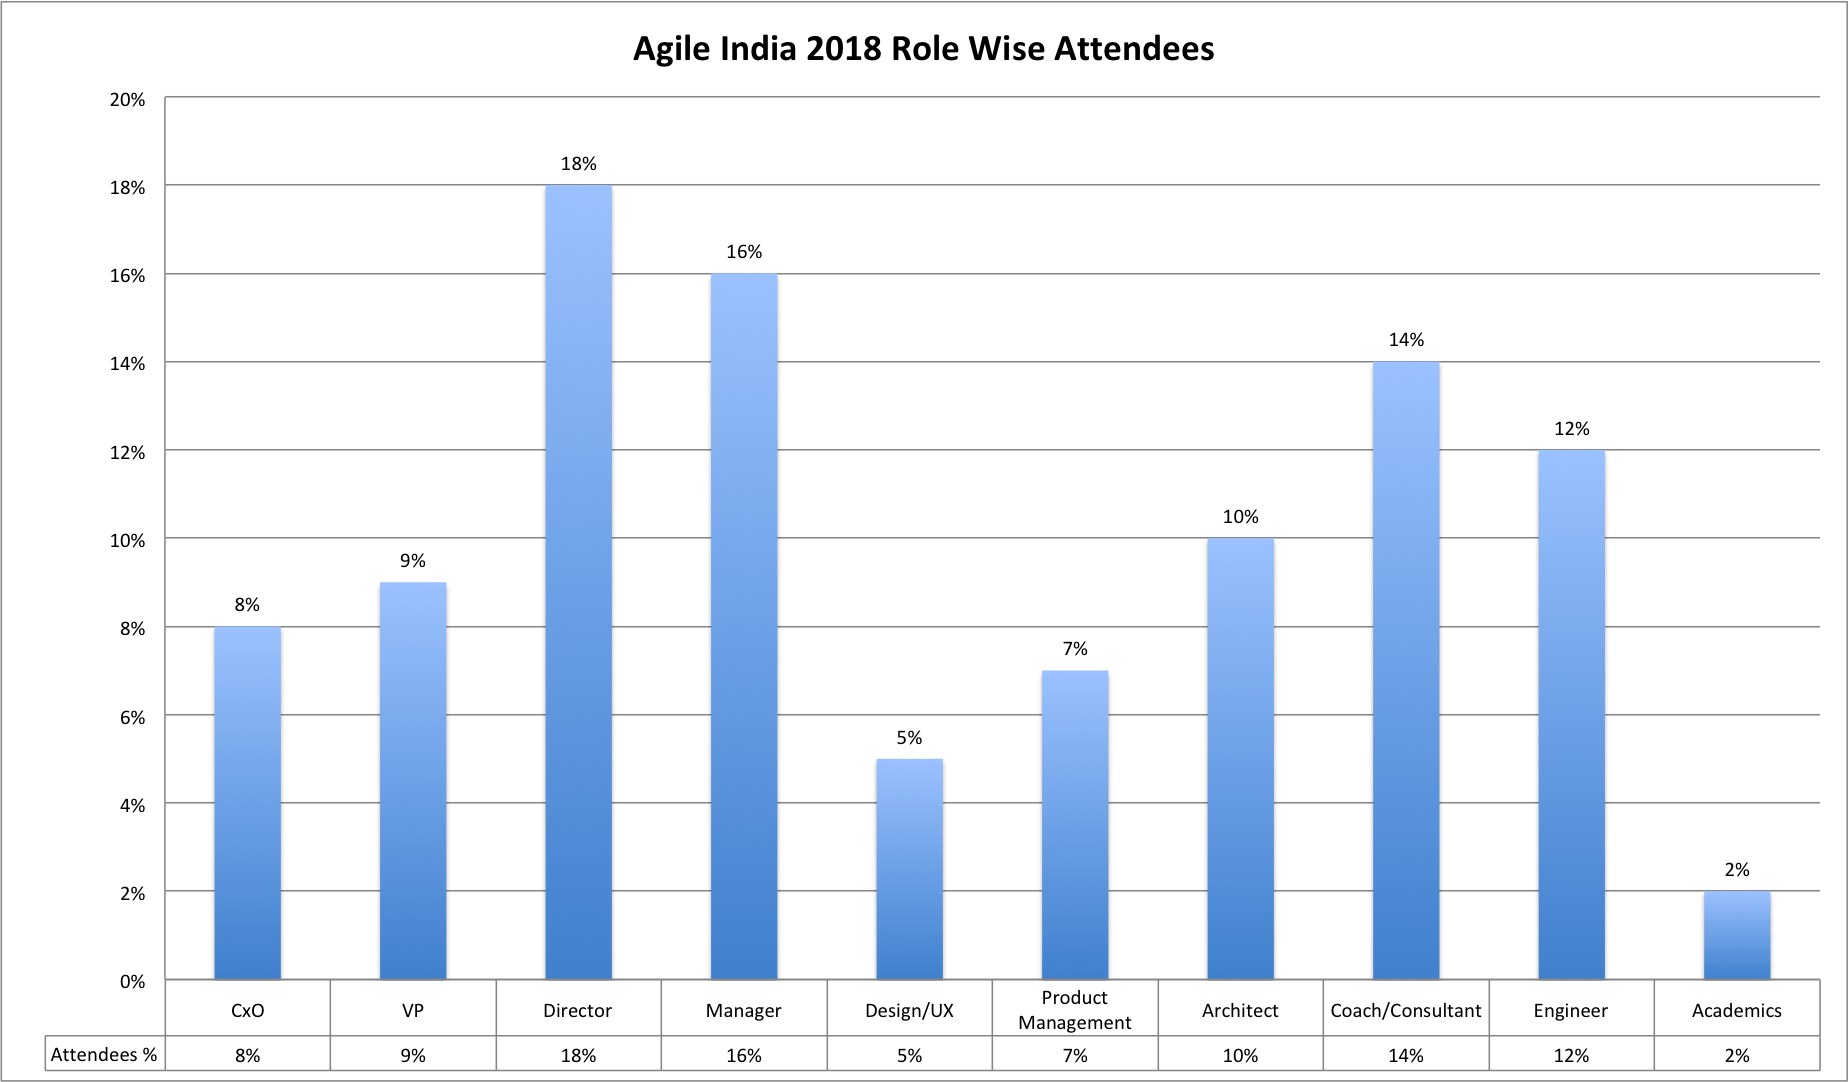 Agile India 2018 Role Wise Attendees